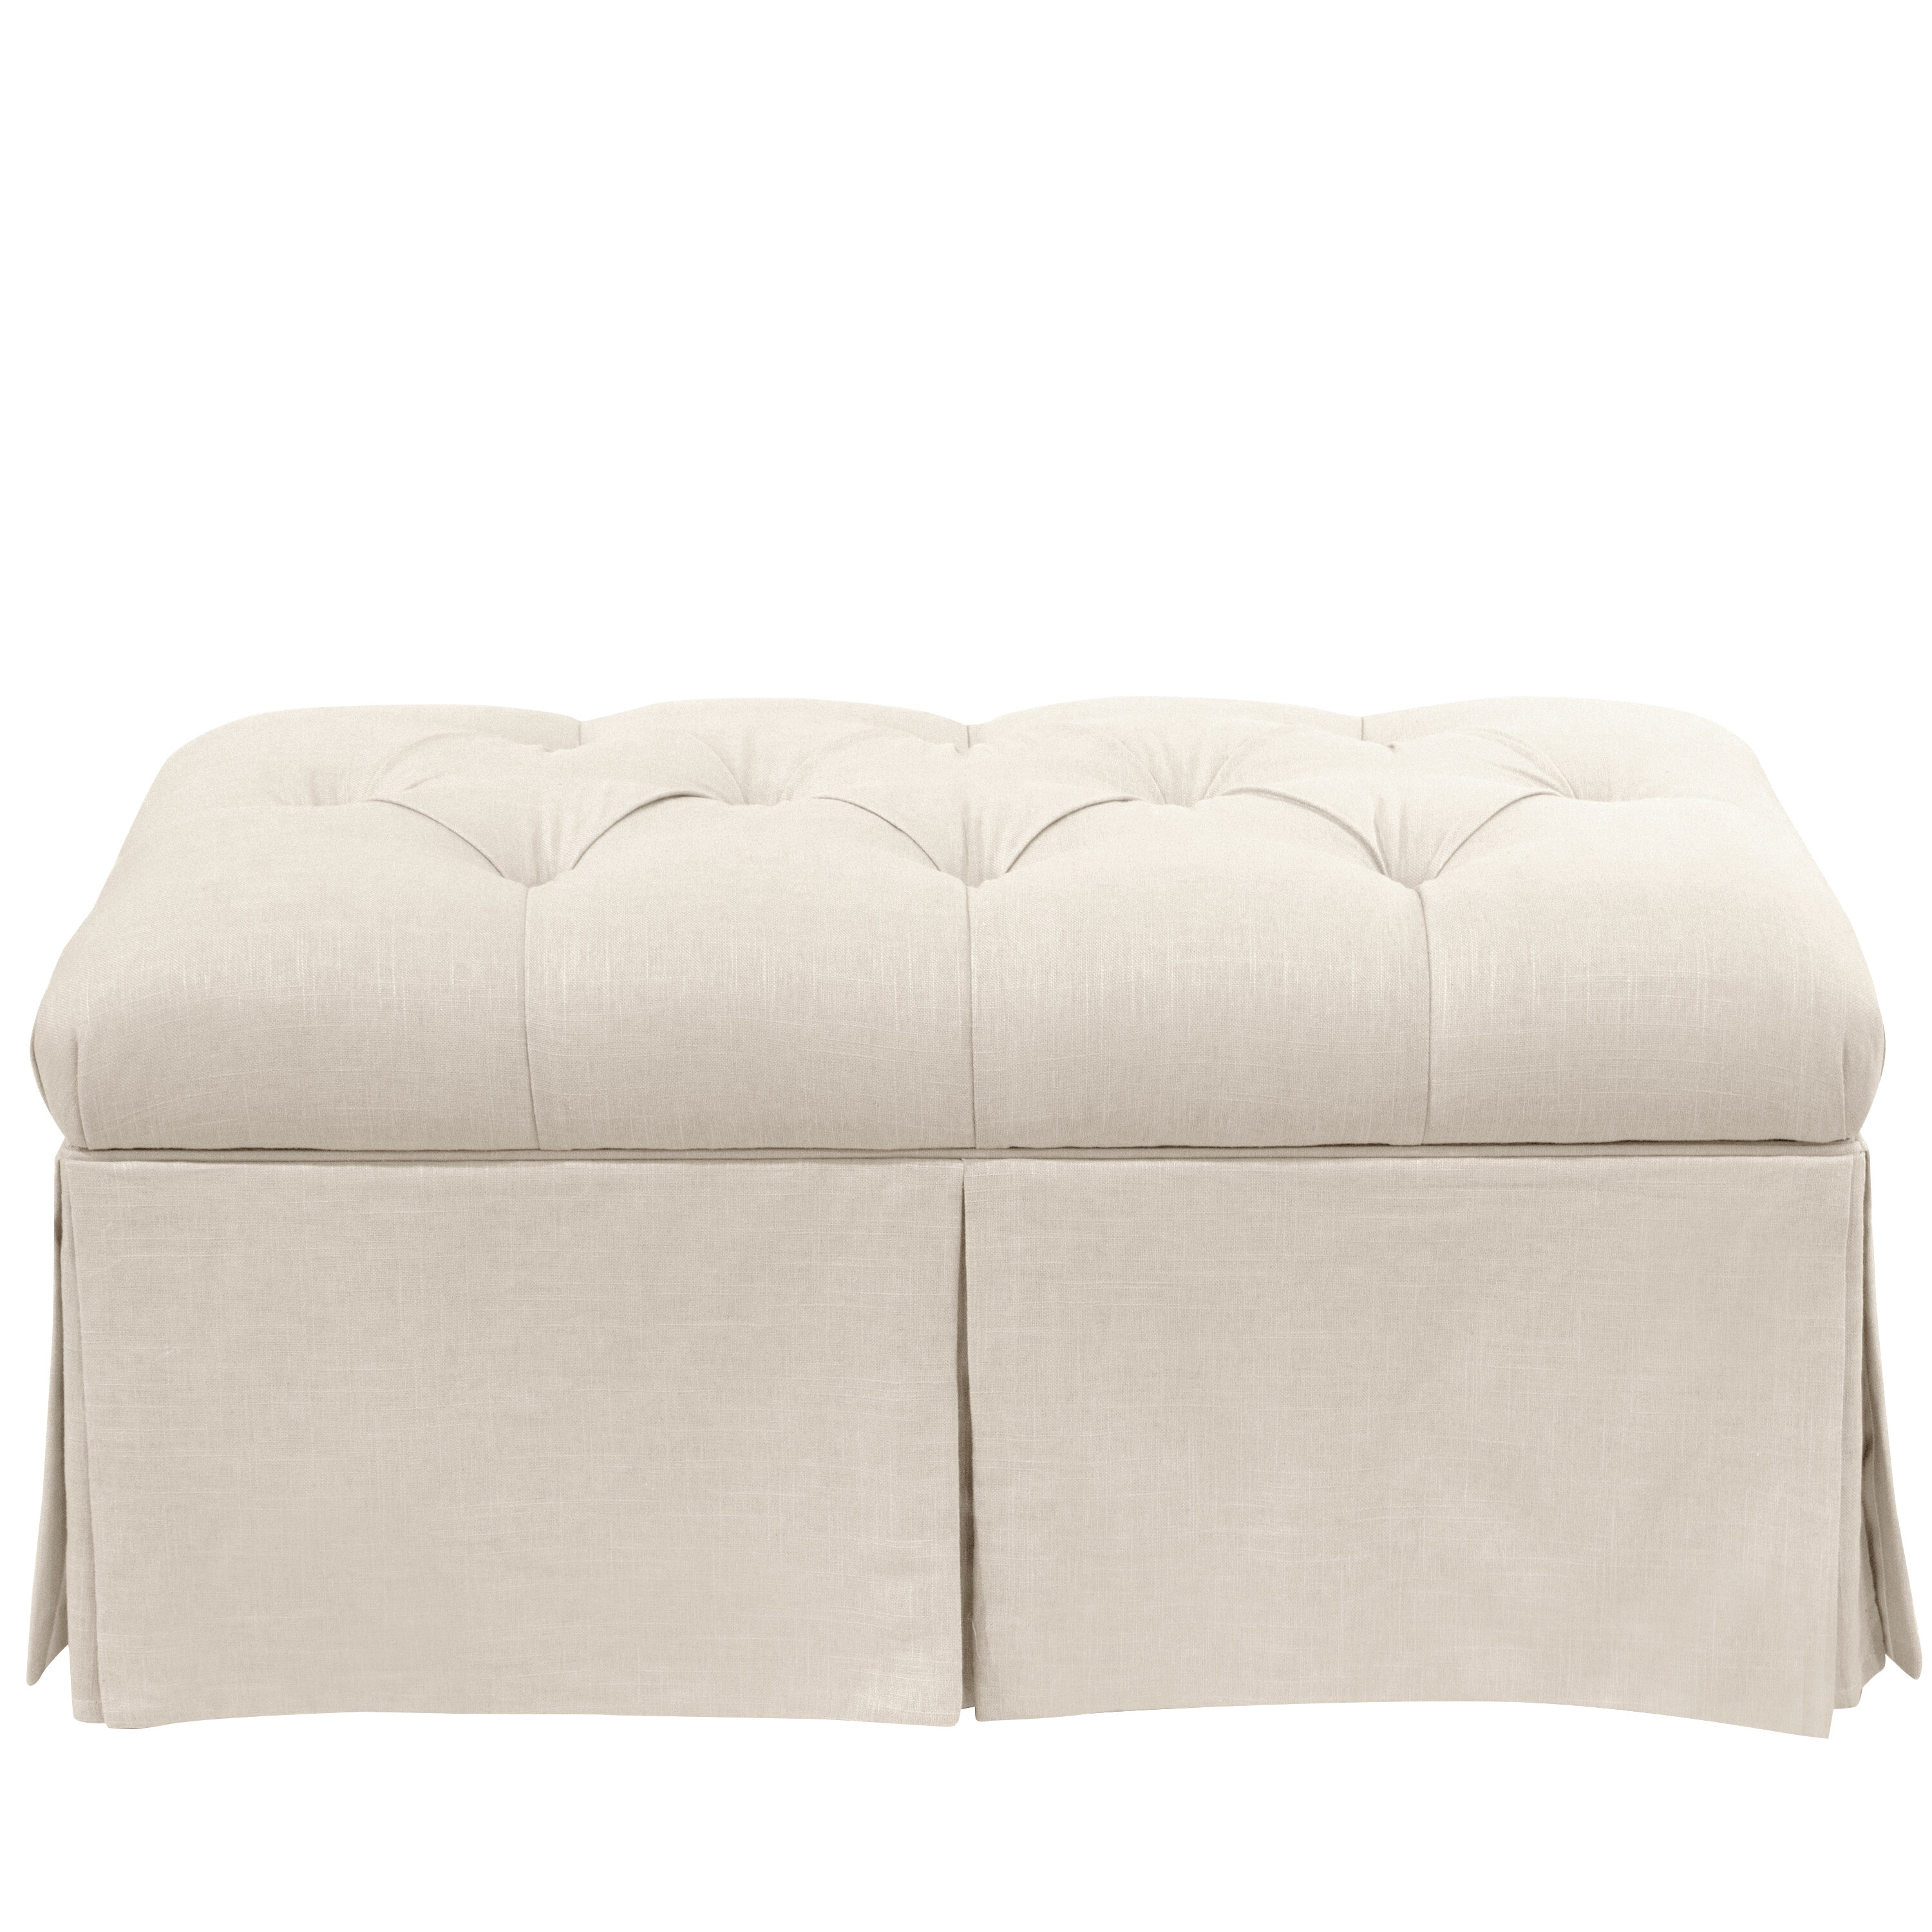 Remarkable Craven Tufted Linen Skirted Storage Bench Caraccident5 Cool Chair Designs And Ideas Caraccident5Info